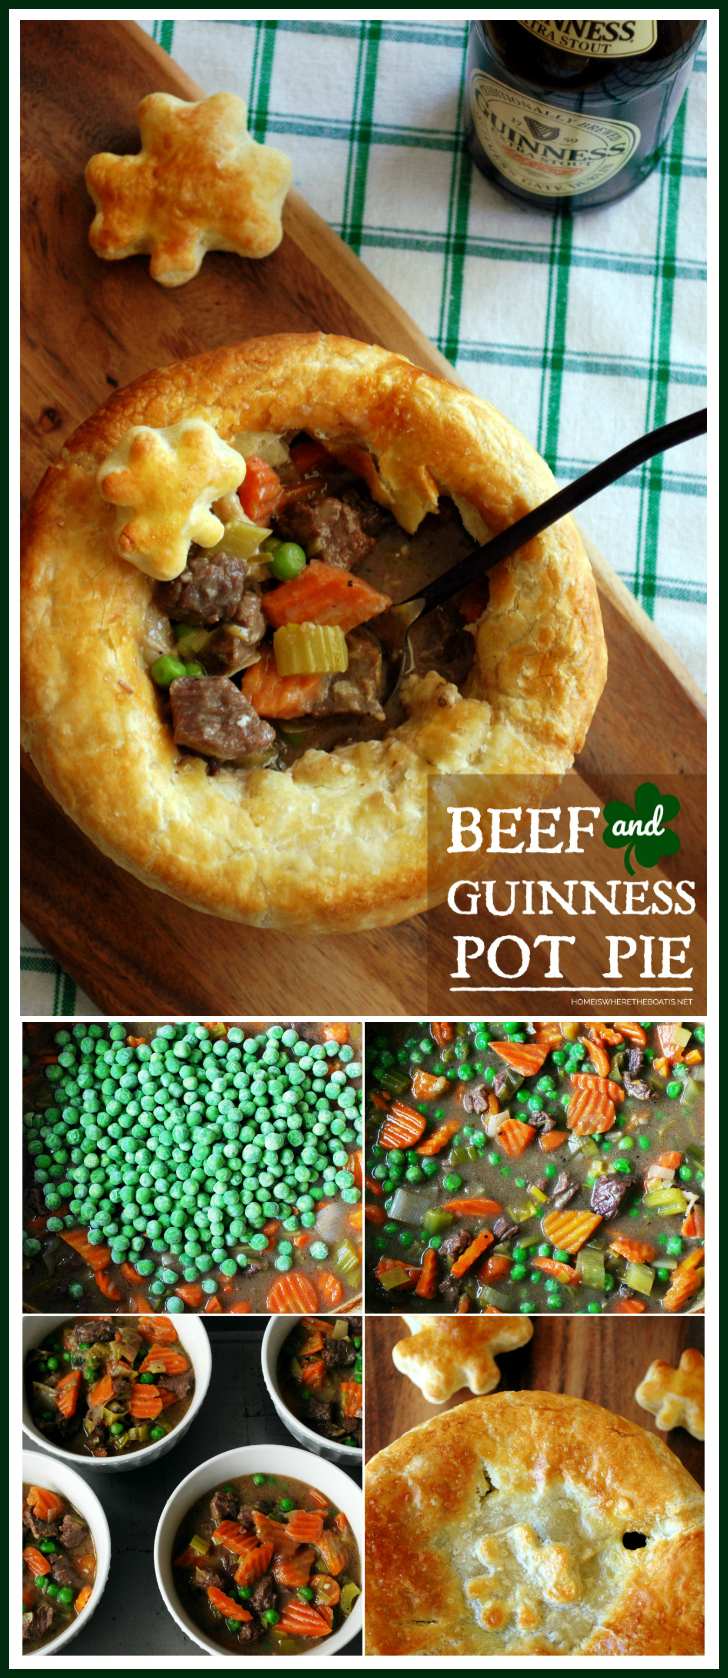 Beef and Guinness Pot Pie with puff pastry shamrocks | ©homeiswheretheboatis.net #stpatricksday #recipes #irish #guinness